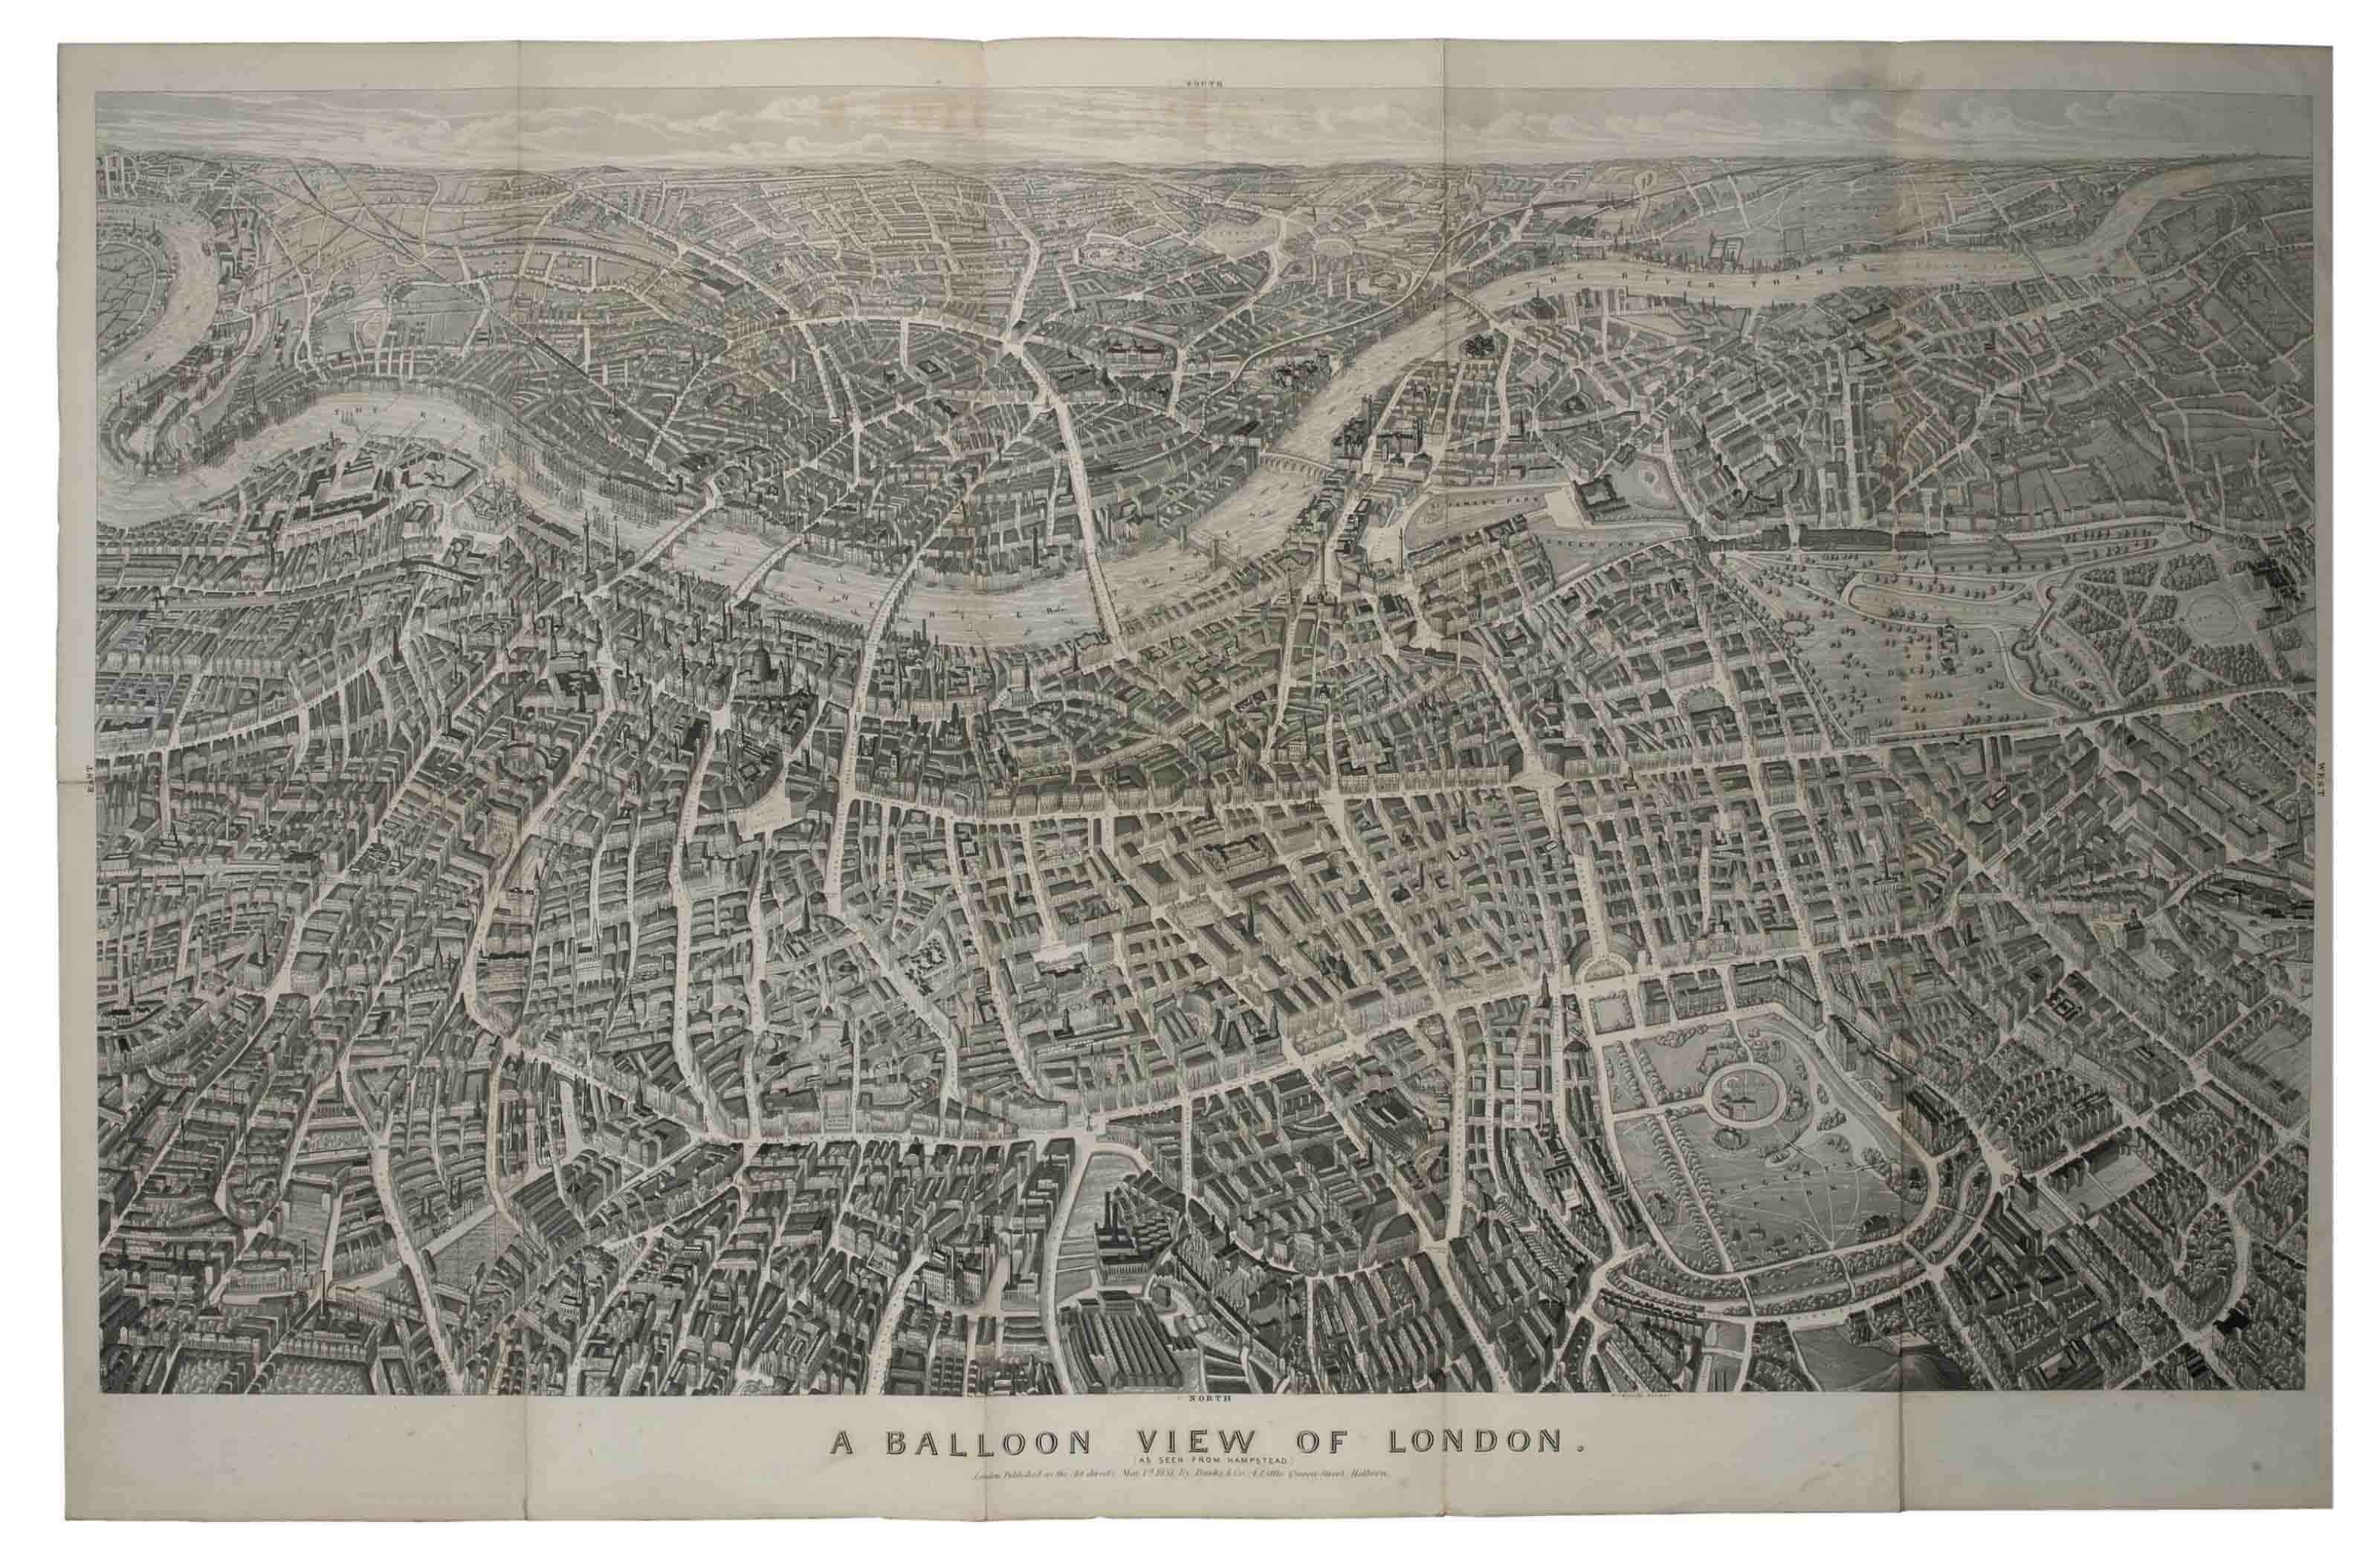 BANKS & Co. (publisher). A Balloon View of London as seen from Hampstead. London: 1851. Large folding lithographic map. (Very light browning, slightly more noticeable at crease folds.) 703 x 1094mm, folded and contained in the small 2° (355 x 266mm) original brown cloth binding, decorated in blind, lettered in gilt to upper cover (extremities very lightly rubbed).